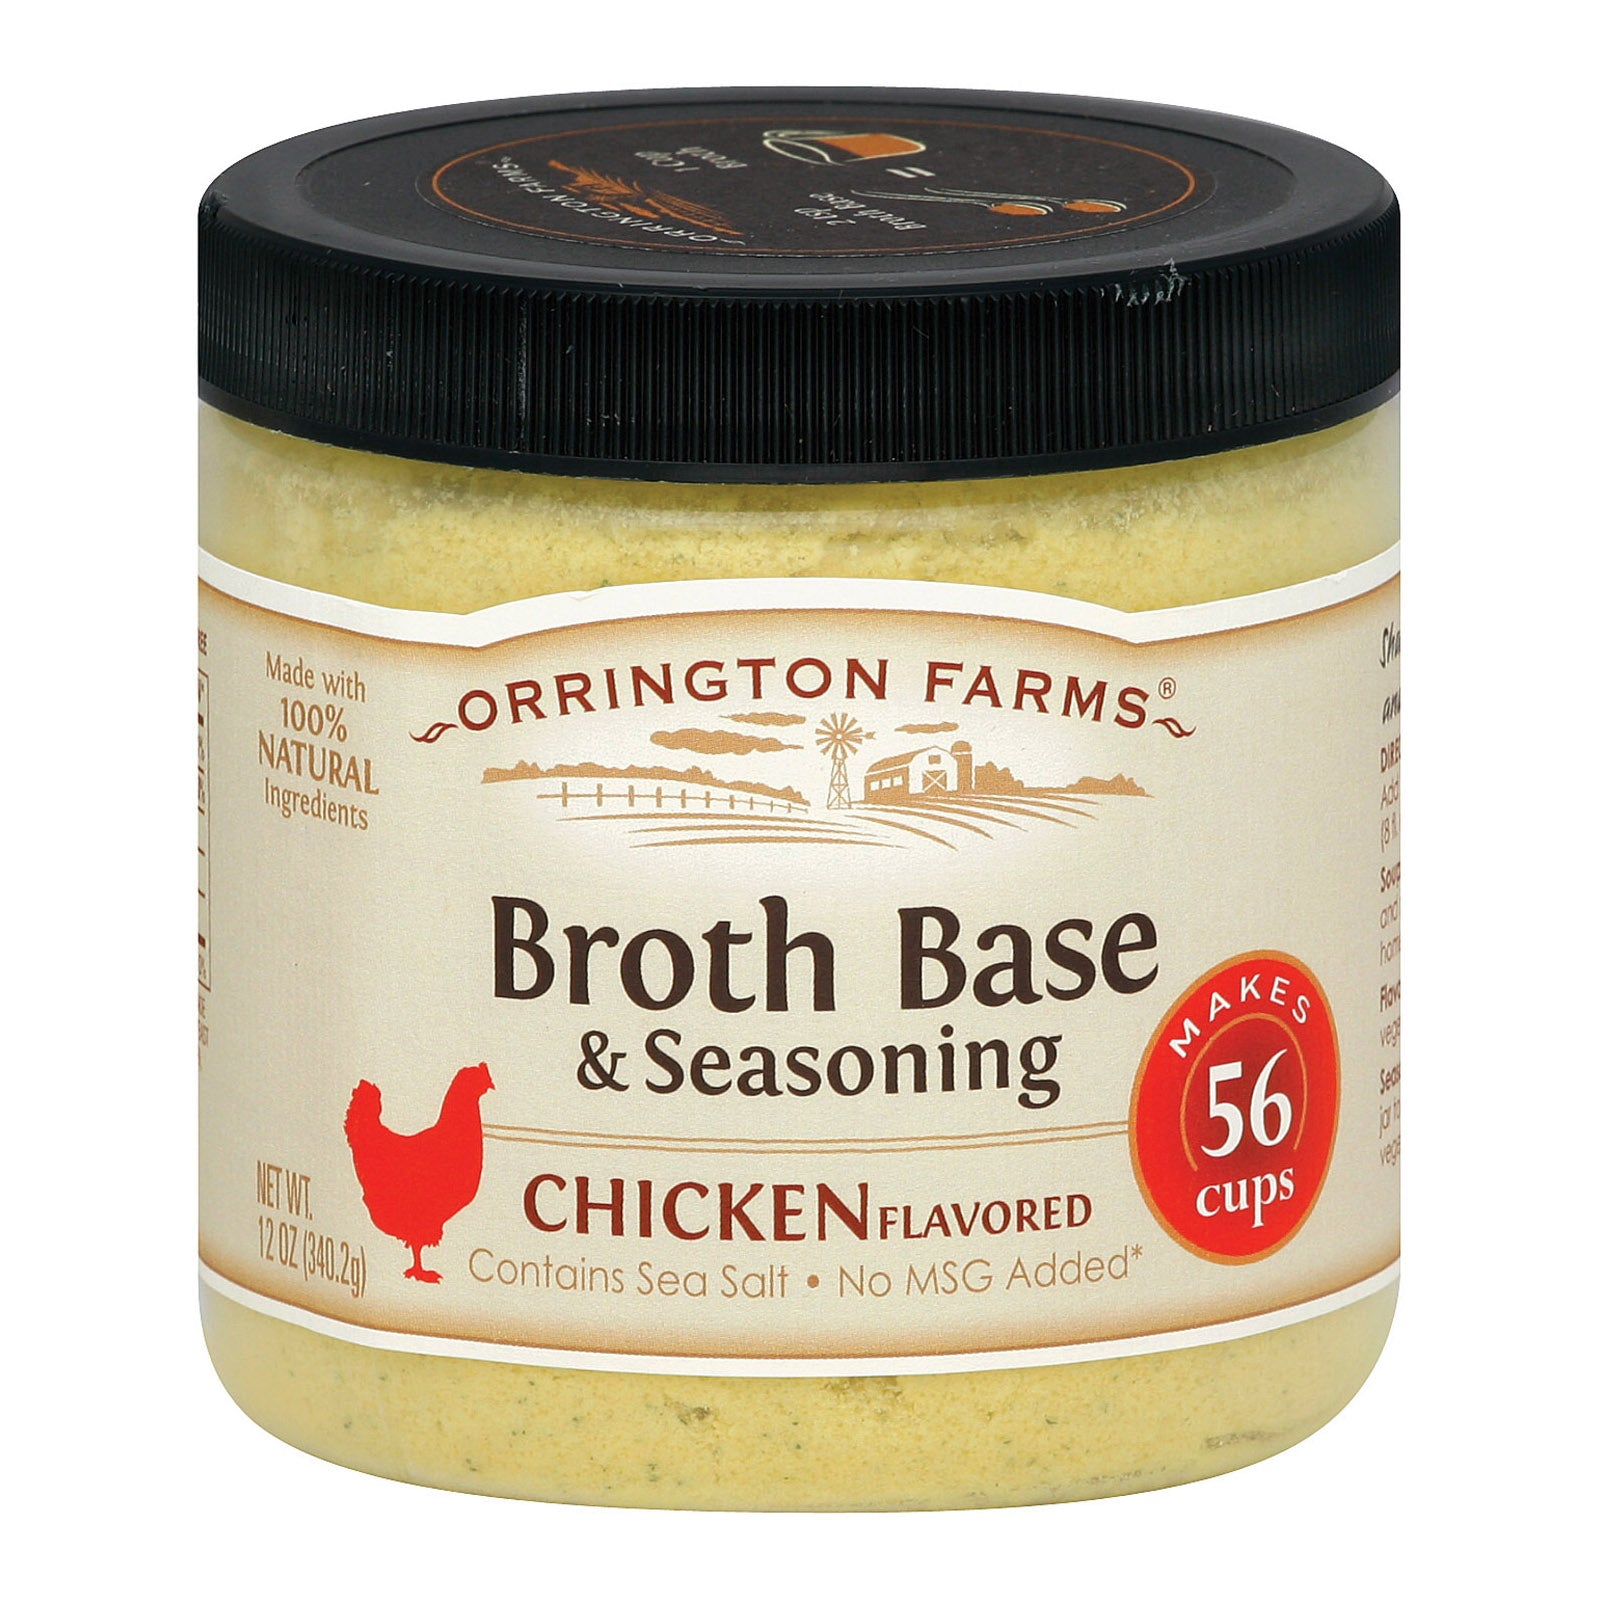 Orrington Farms Broth Base And Seasoning - Chicken - Case Of 6 - 12 Oz. HG1042084